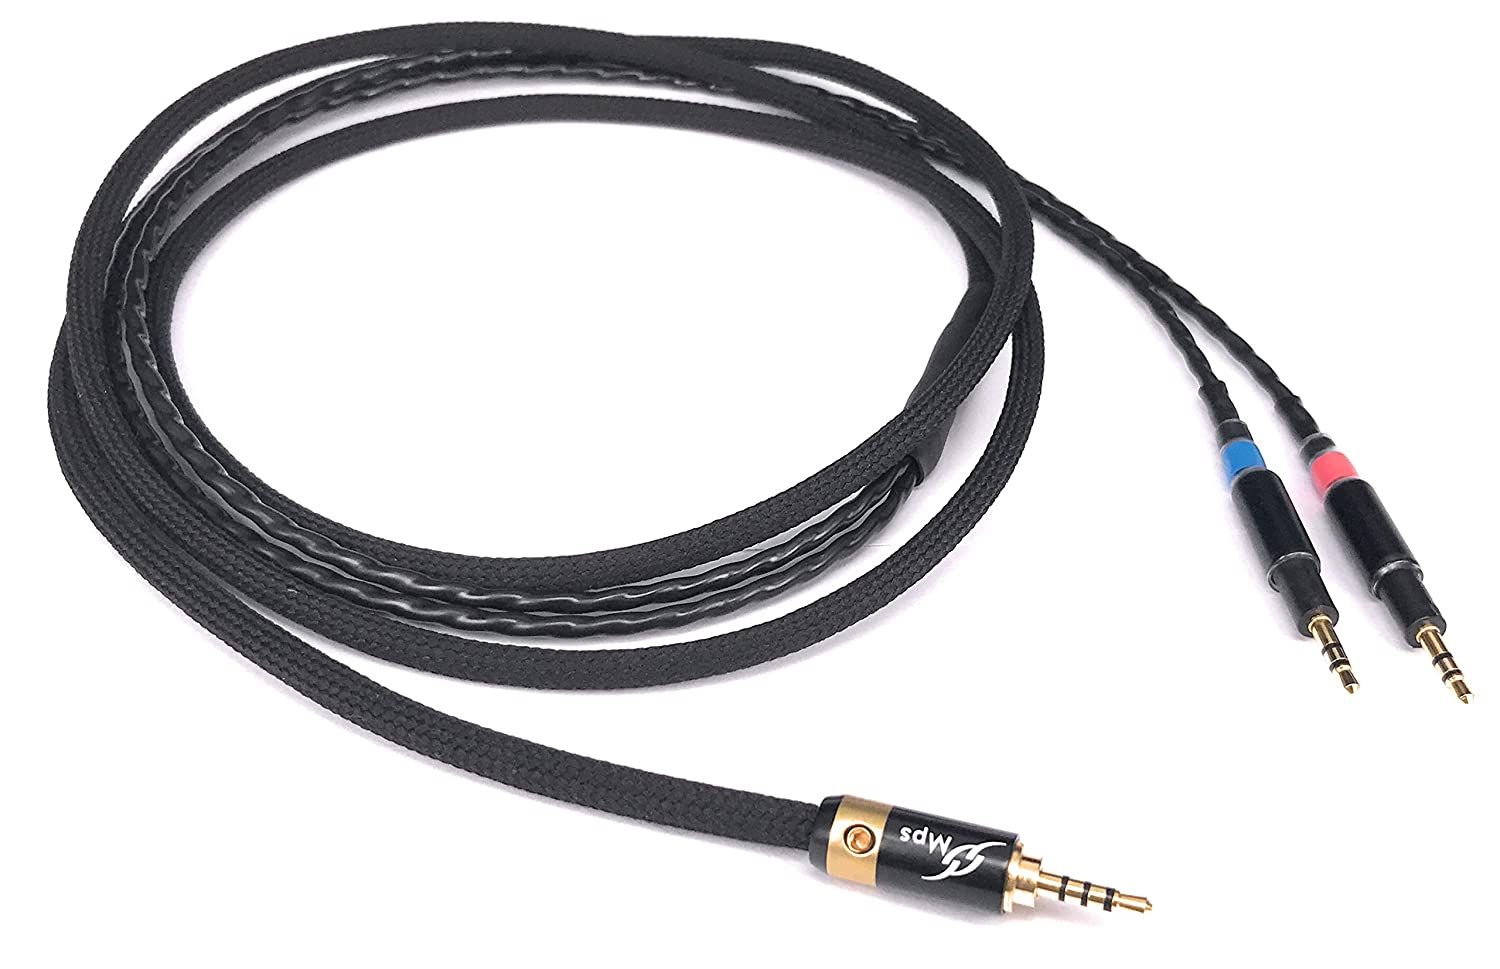 Amazon.com: HI-4-B HE400i Balanced Cable 1.5m/with 2.5mm TRRS Plug for Astell&Kern AK100, AK120, AK240, Luxury & Precision etc, HiFiMAN Upgrade Cable: Home ...